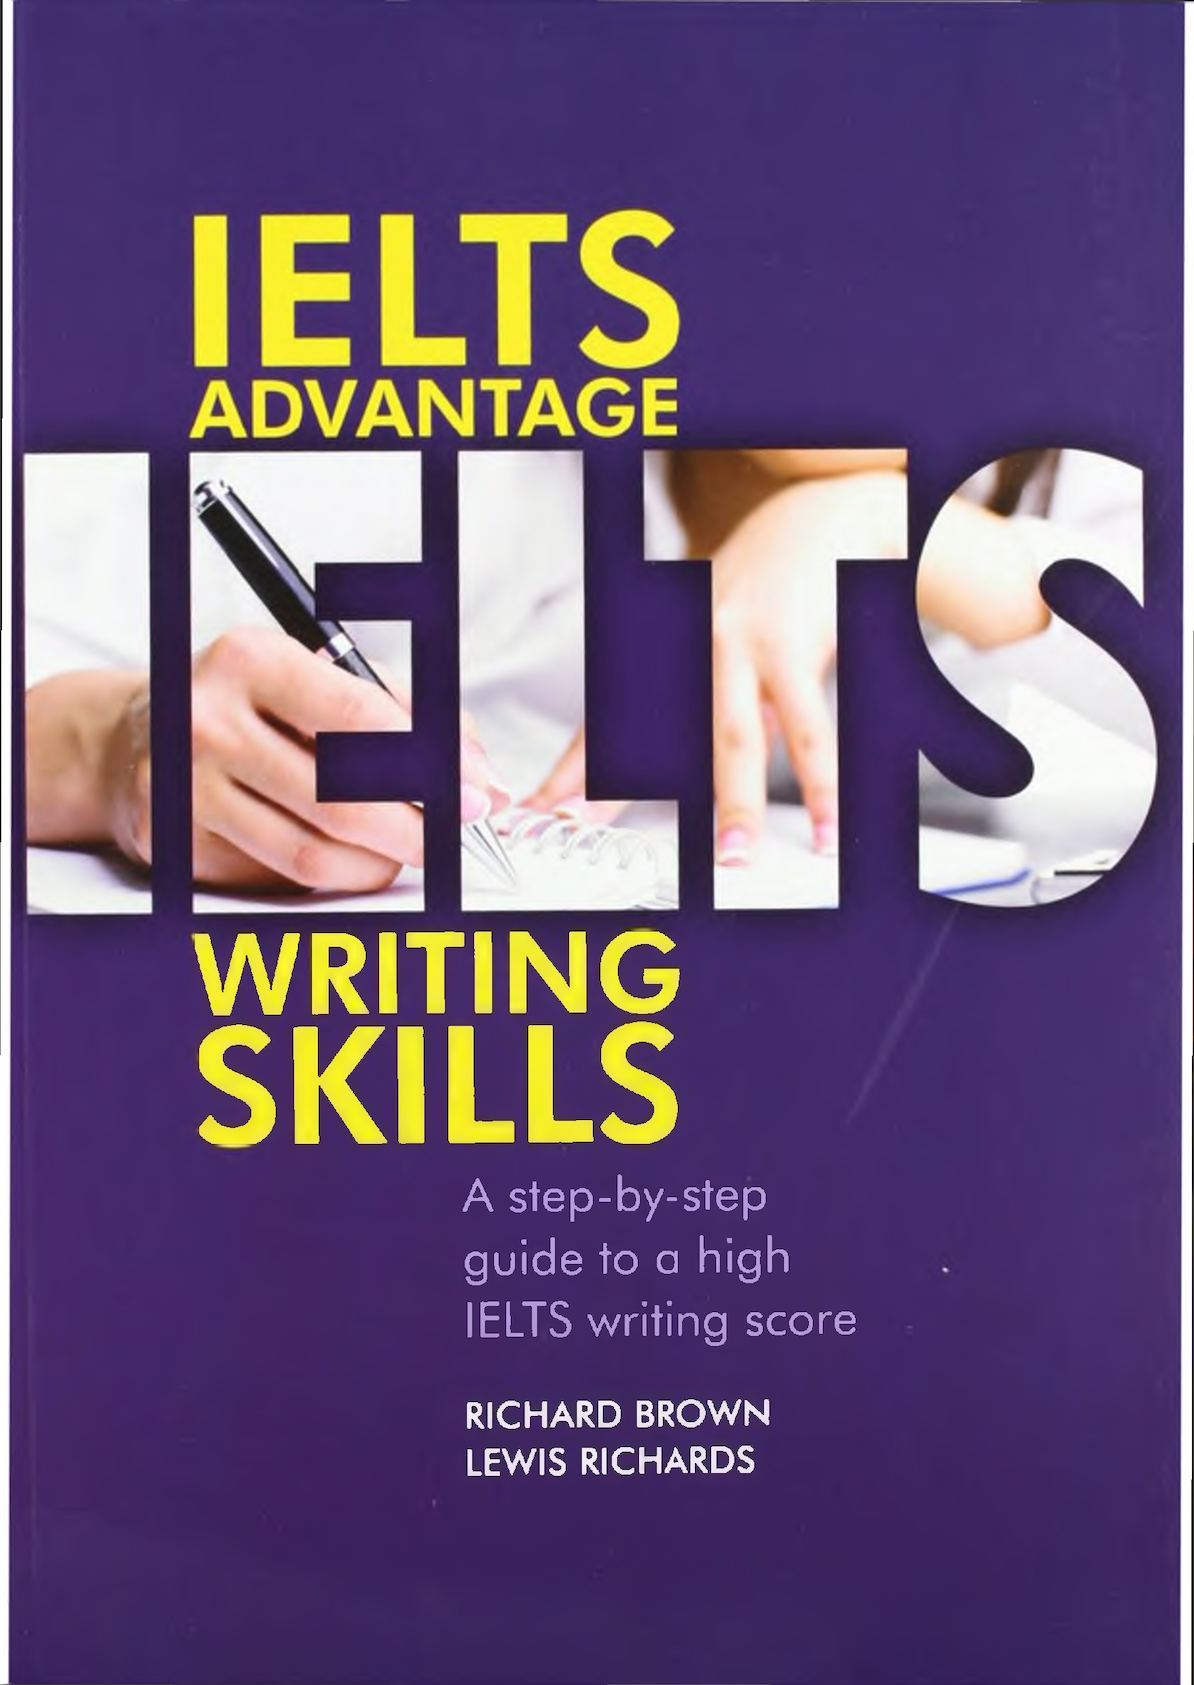 Calaméo - Ielts Advantage Writing